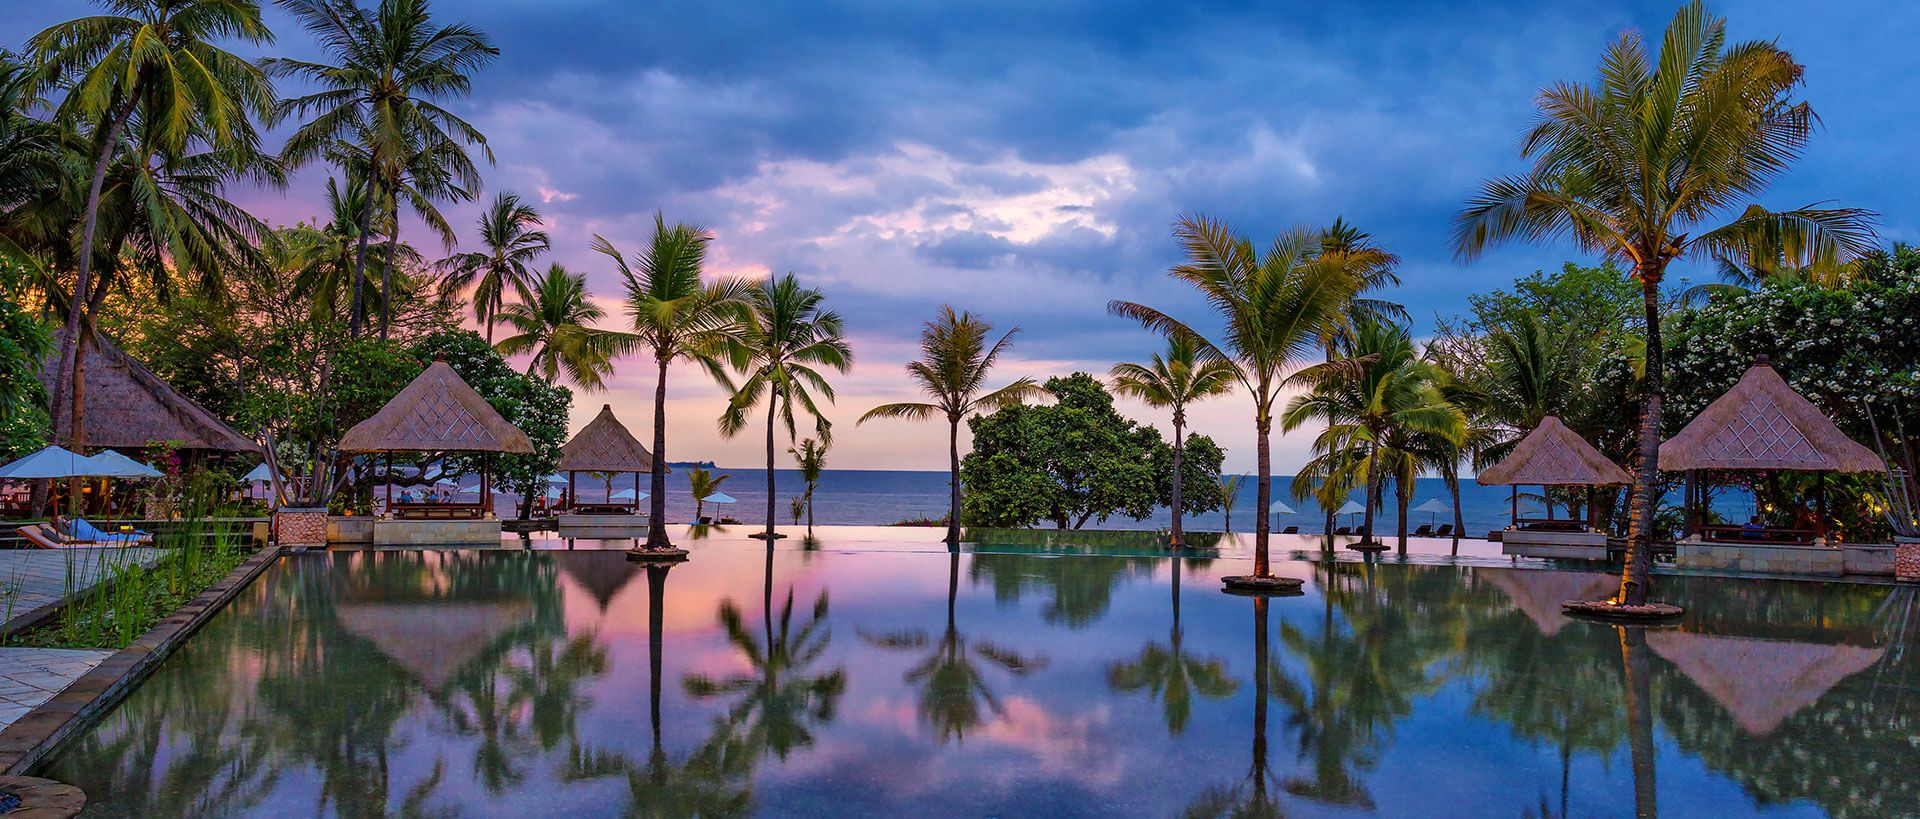 Things to Do in Lombok